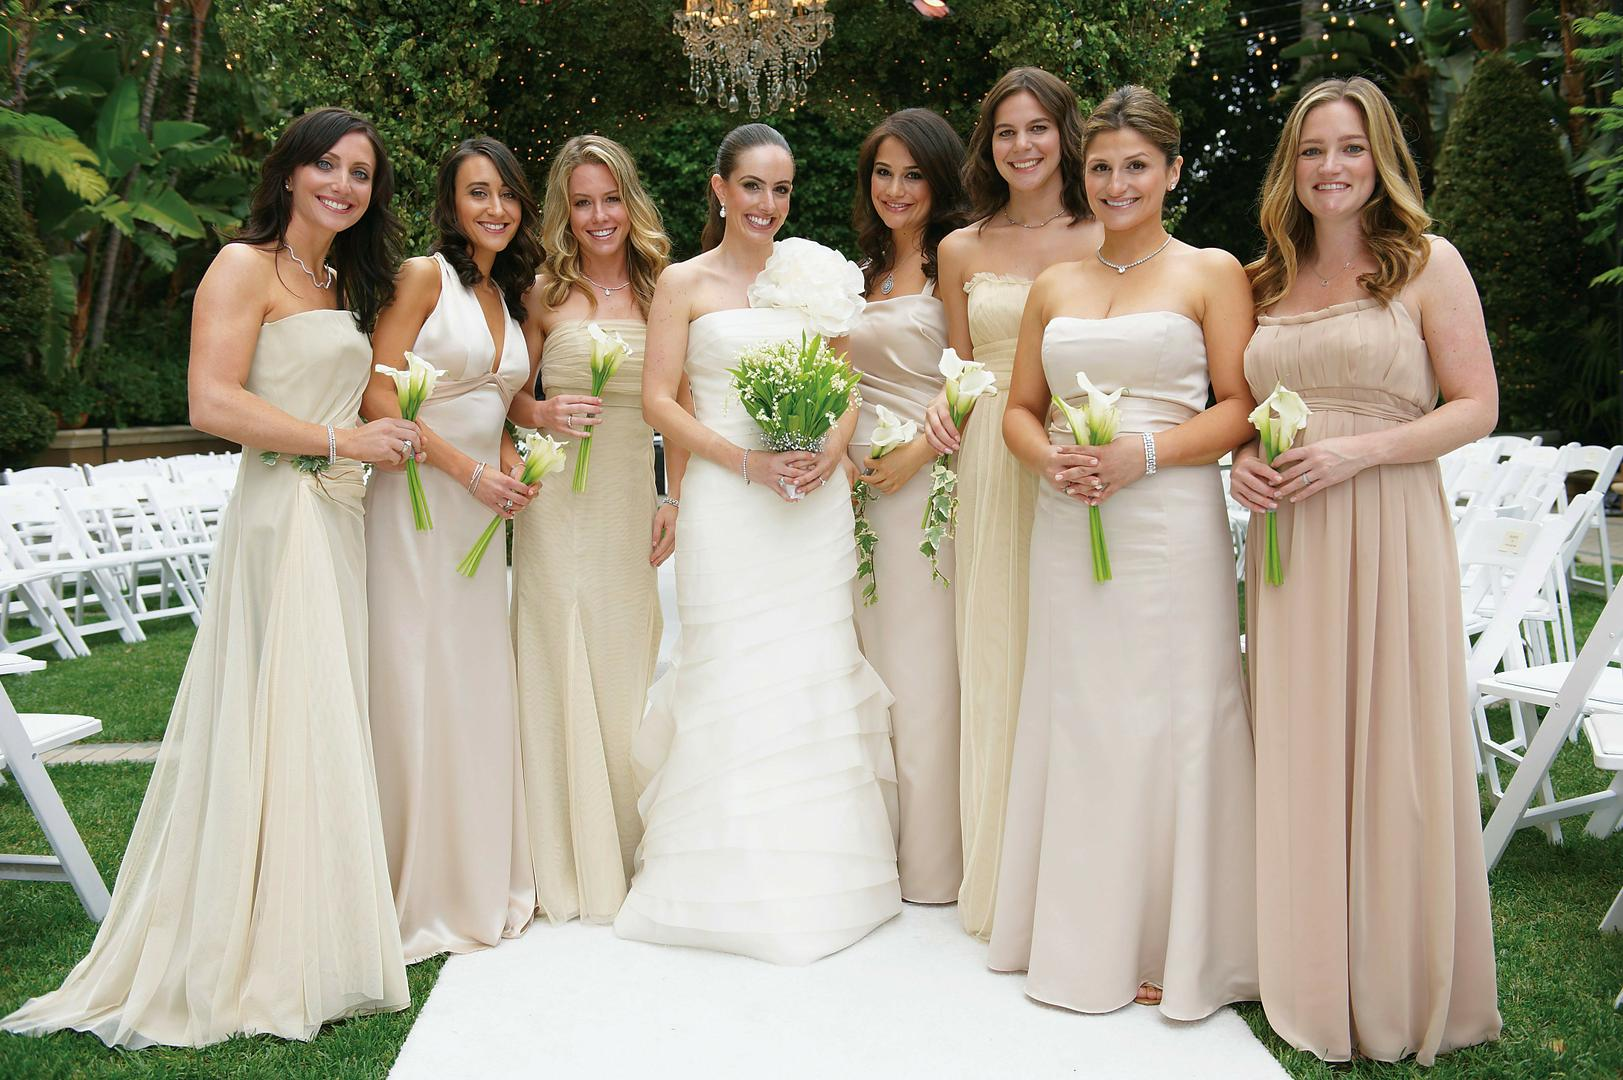 Wedding Mismatched Bridesmaid Dresses mismatched bridesmaid dresses gowns bridesmaids dont have to wear matching look beautiful and cohesive on your wedding day